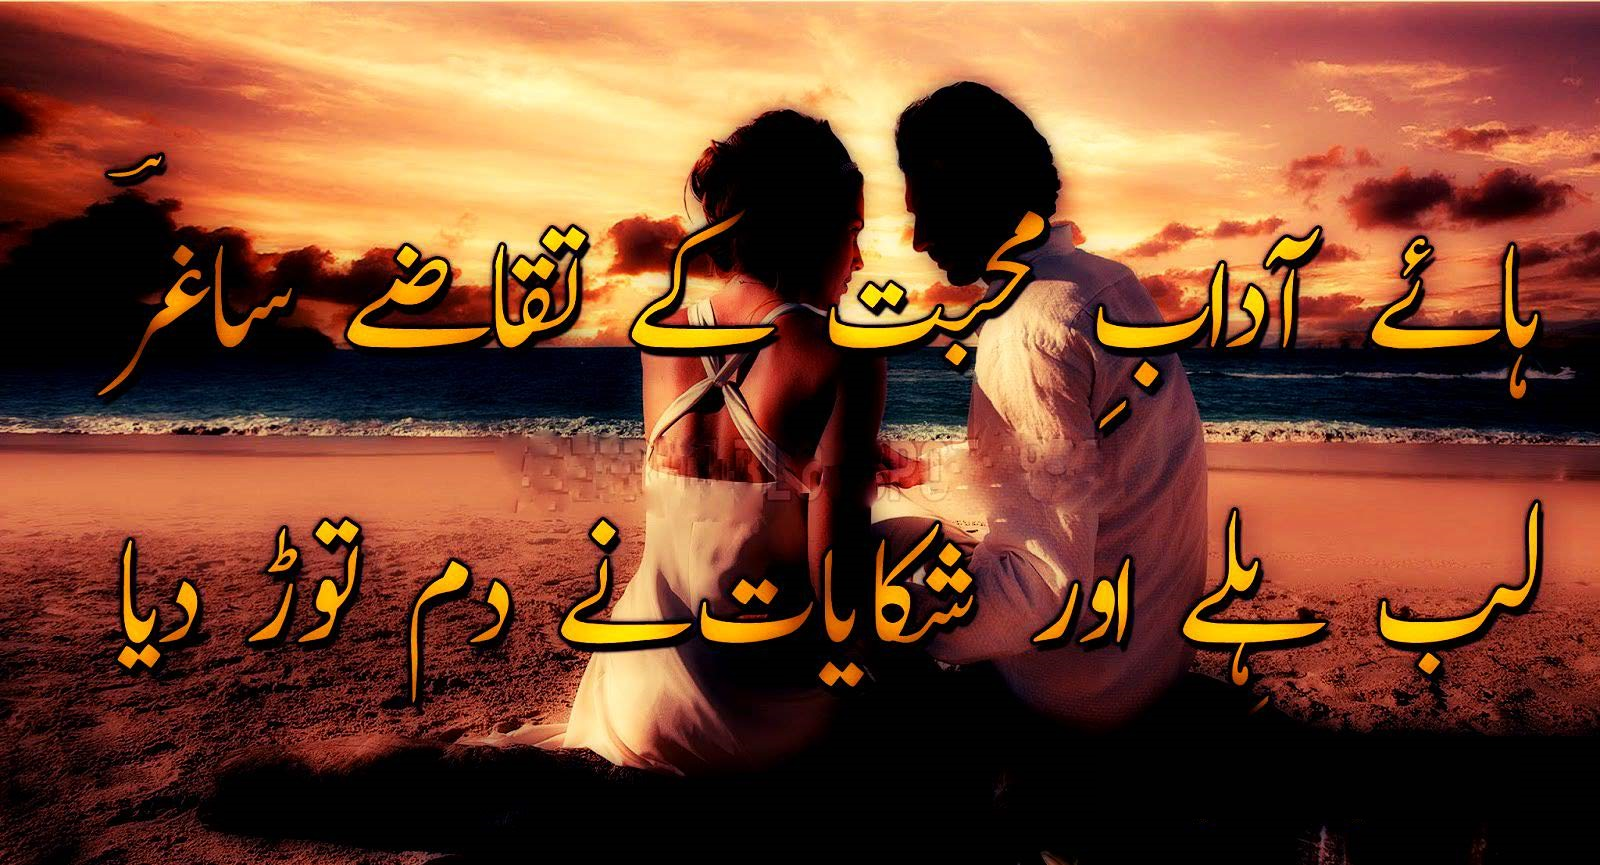 2 line shayari, two line shayari, 2 line poetry, 2 line sad shayari, two line urdu poetry shayari, 2 line sad poetry, two line sad shayari, 2 line poetry in hindi, Two 2 line shayari in hindi, Two line love shayari, two line shayari on zindagi, 4 line poems, two lines poetry pictures.